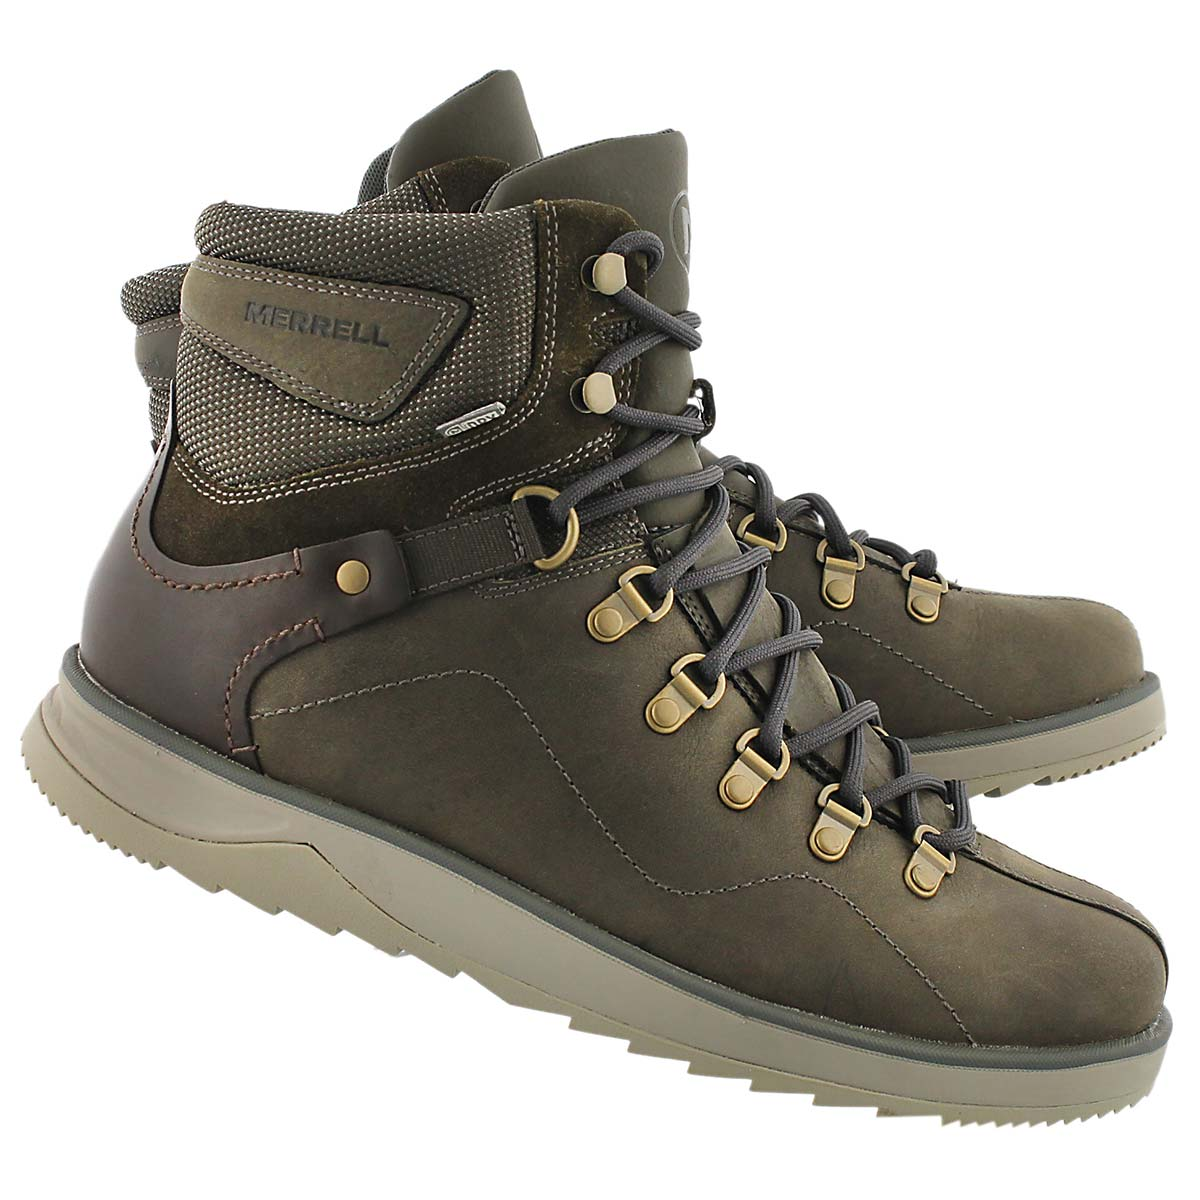 Mns Epiction Polar bldr wtpf winter boot